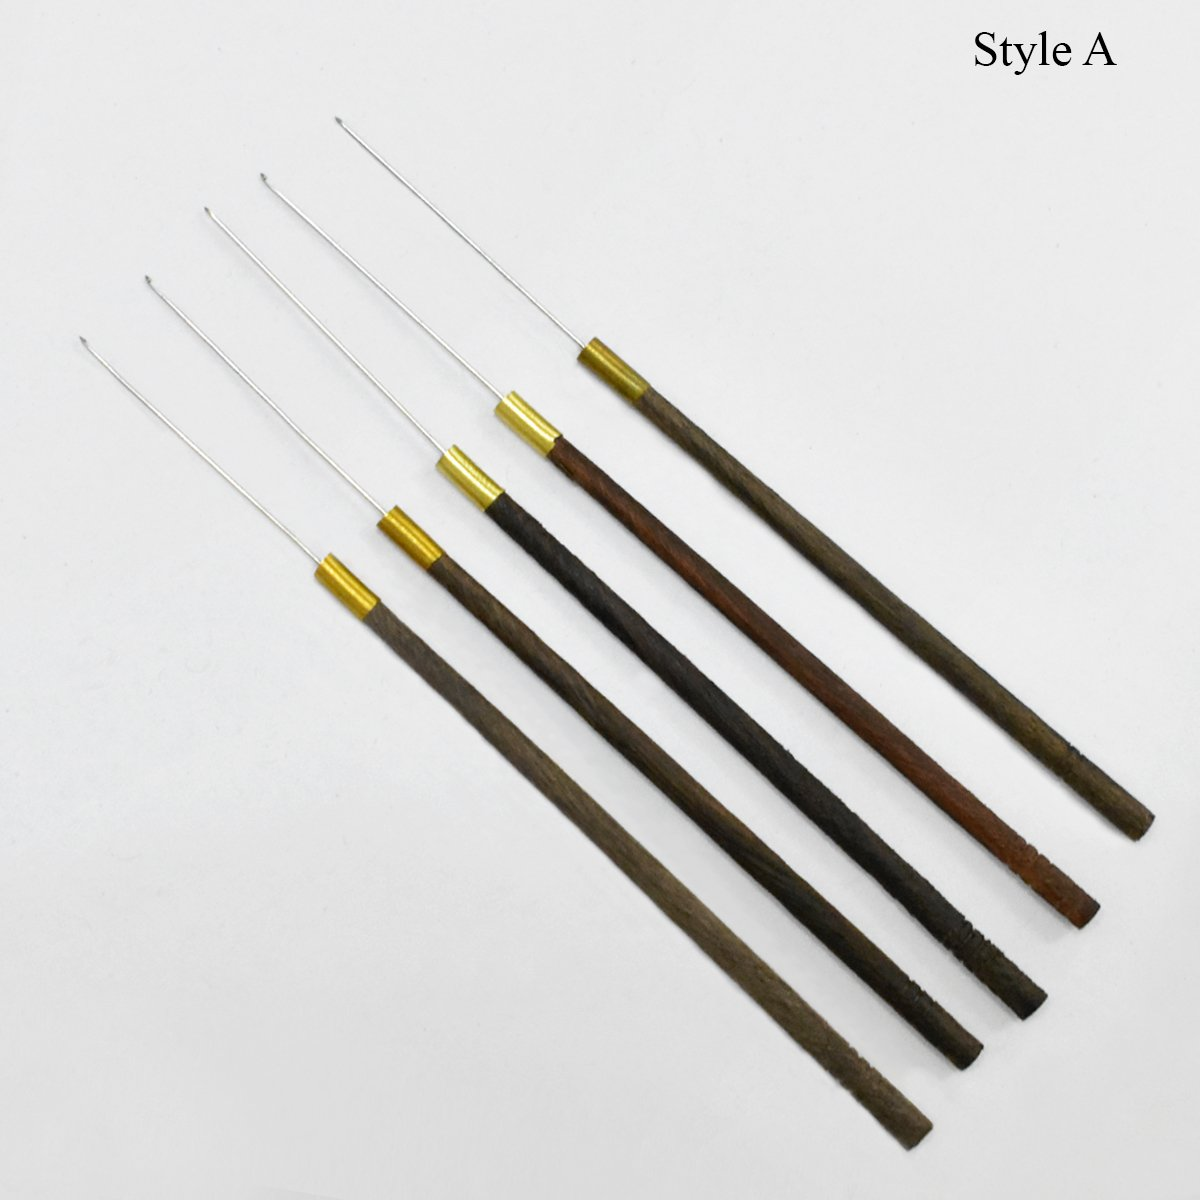 Hand Embroidery Needles for Aari Embroidery Technique (5 Needles per Packet) (All Three Style) embroiderymaterial.com